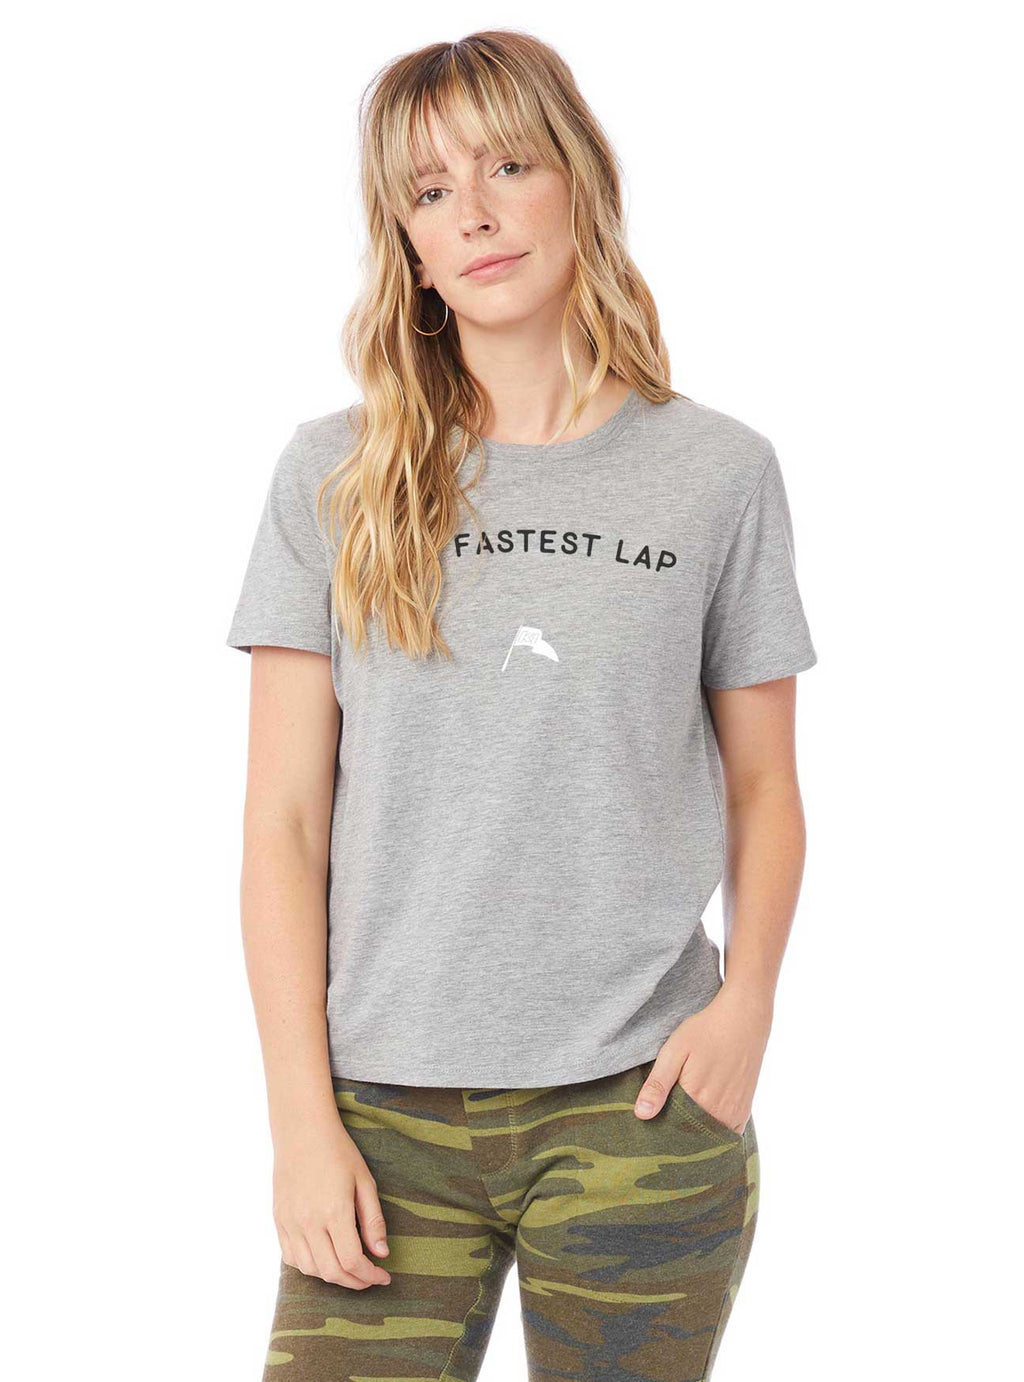 Women's The Fastest Lap Tee